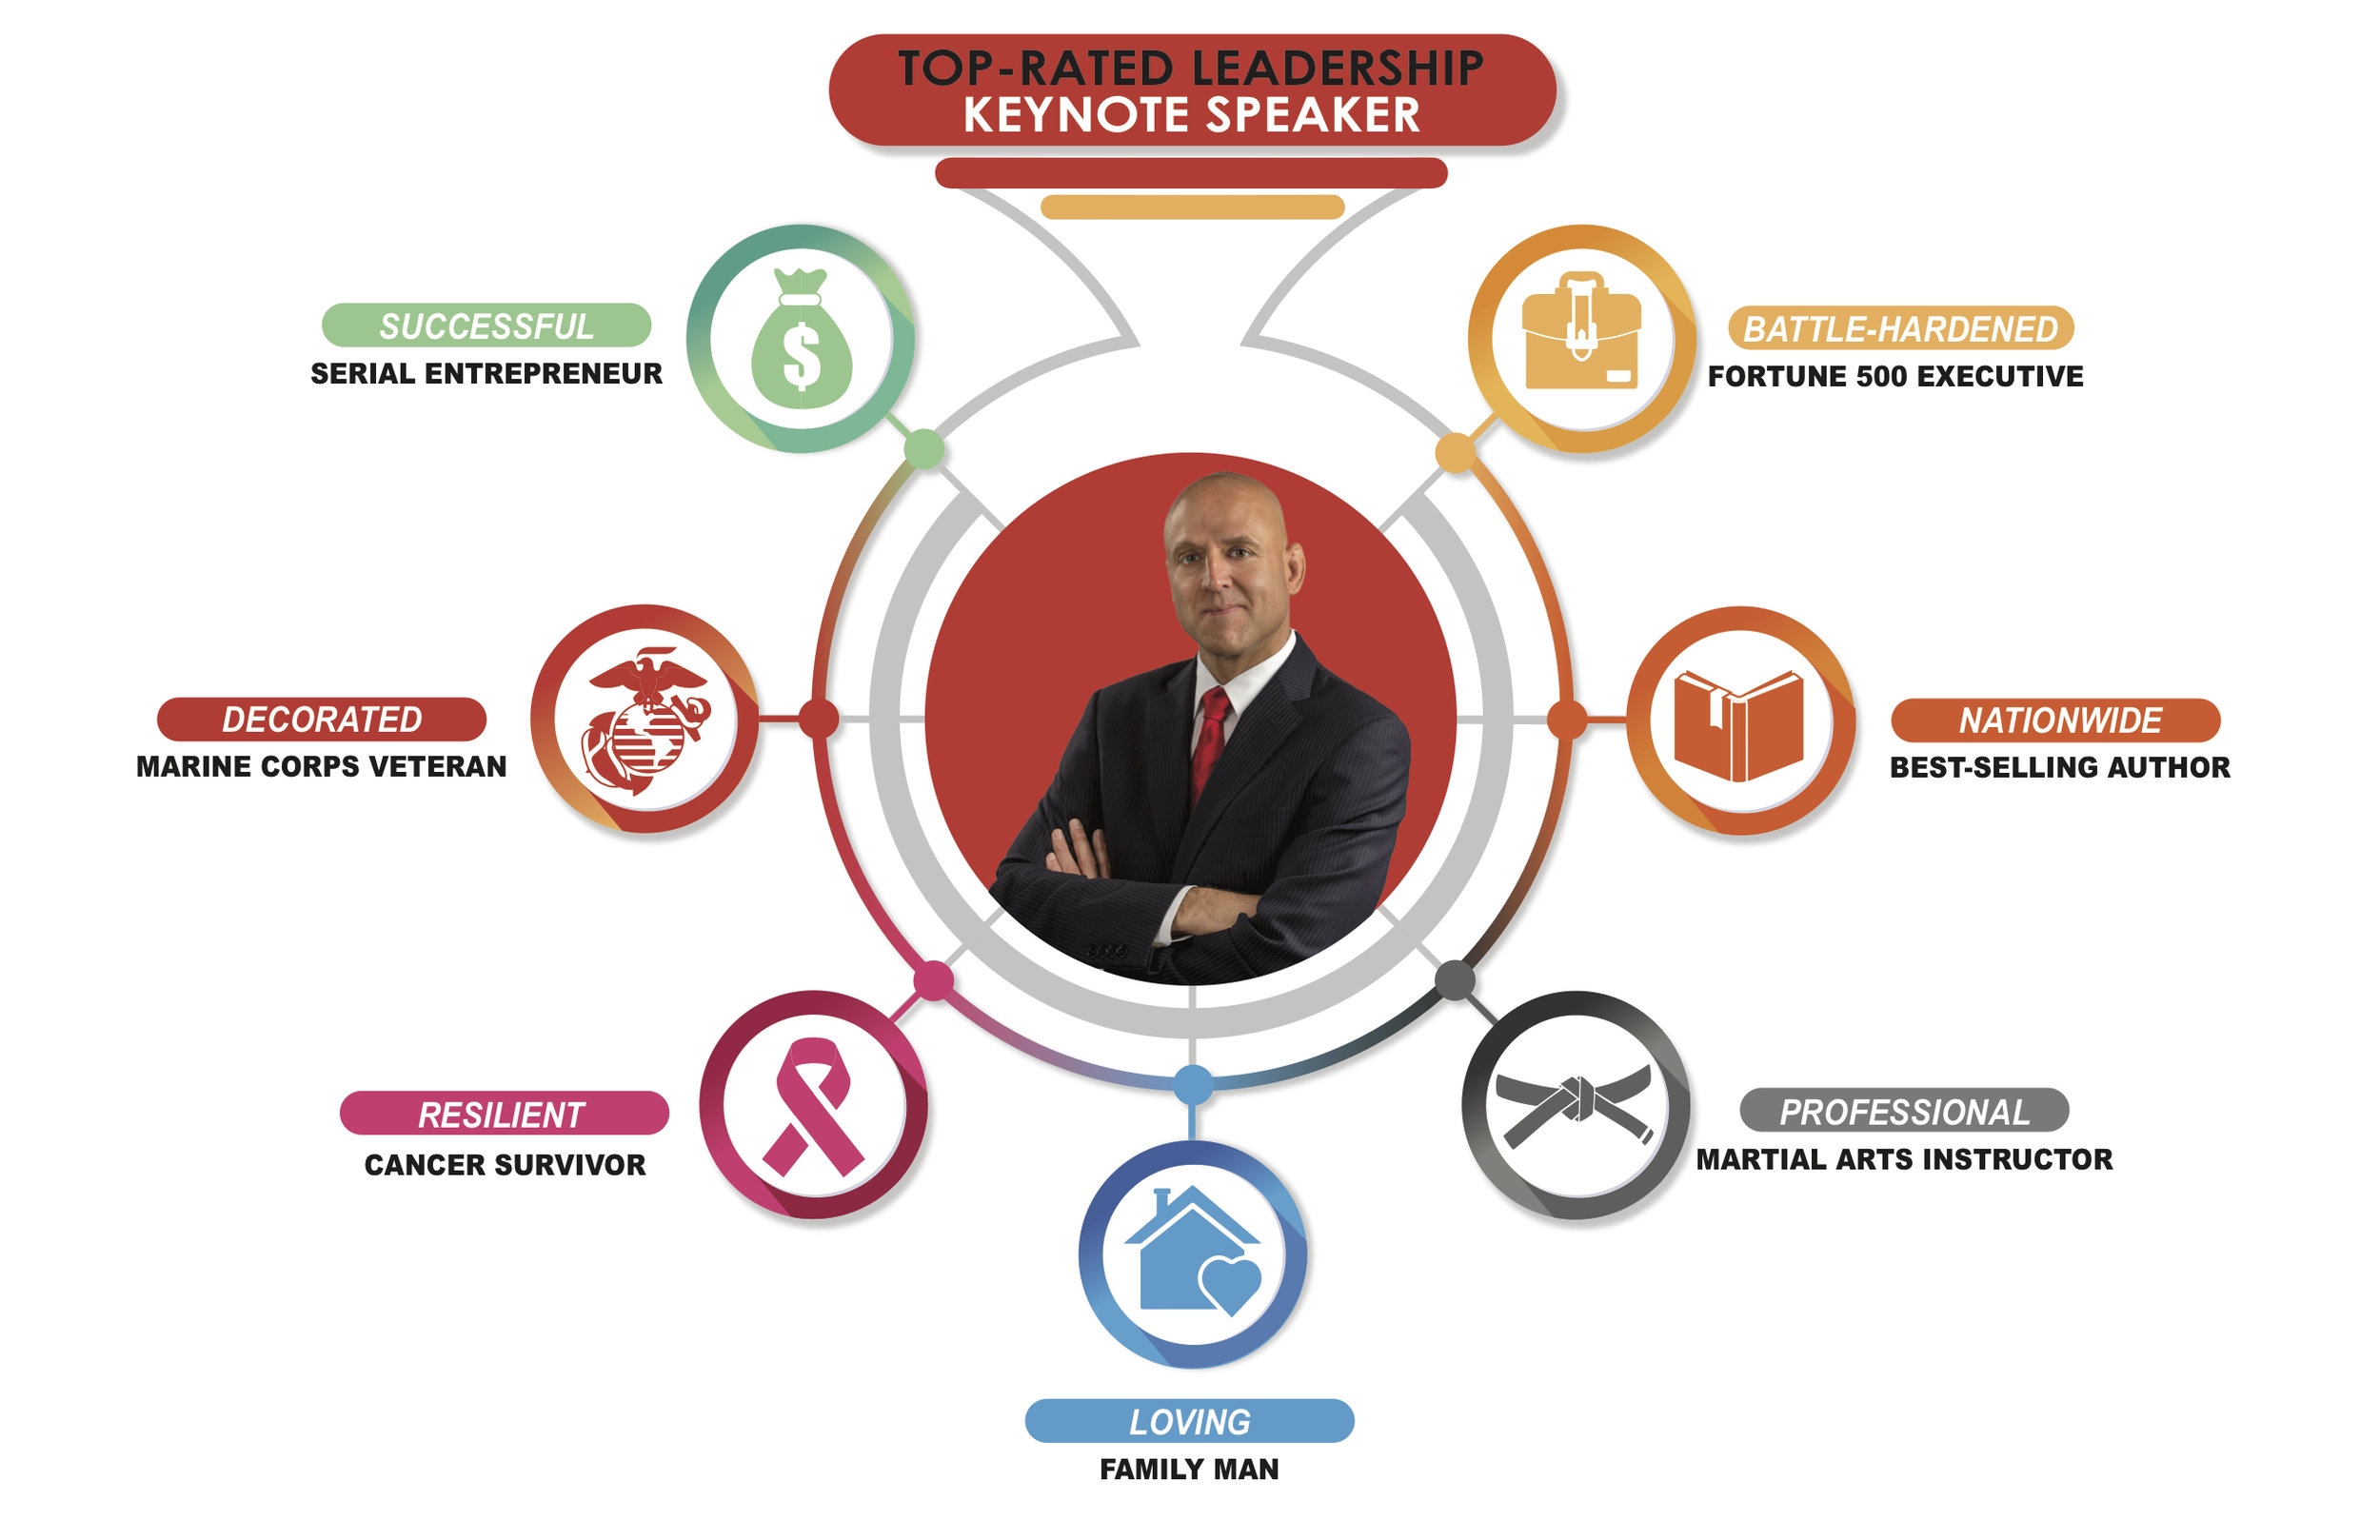 Michael Veltri Top Leadership Keynote Speaker